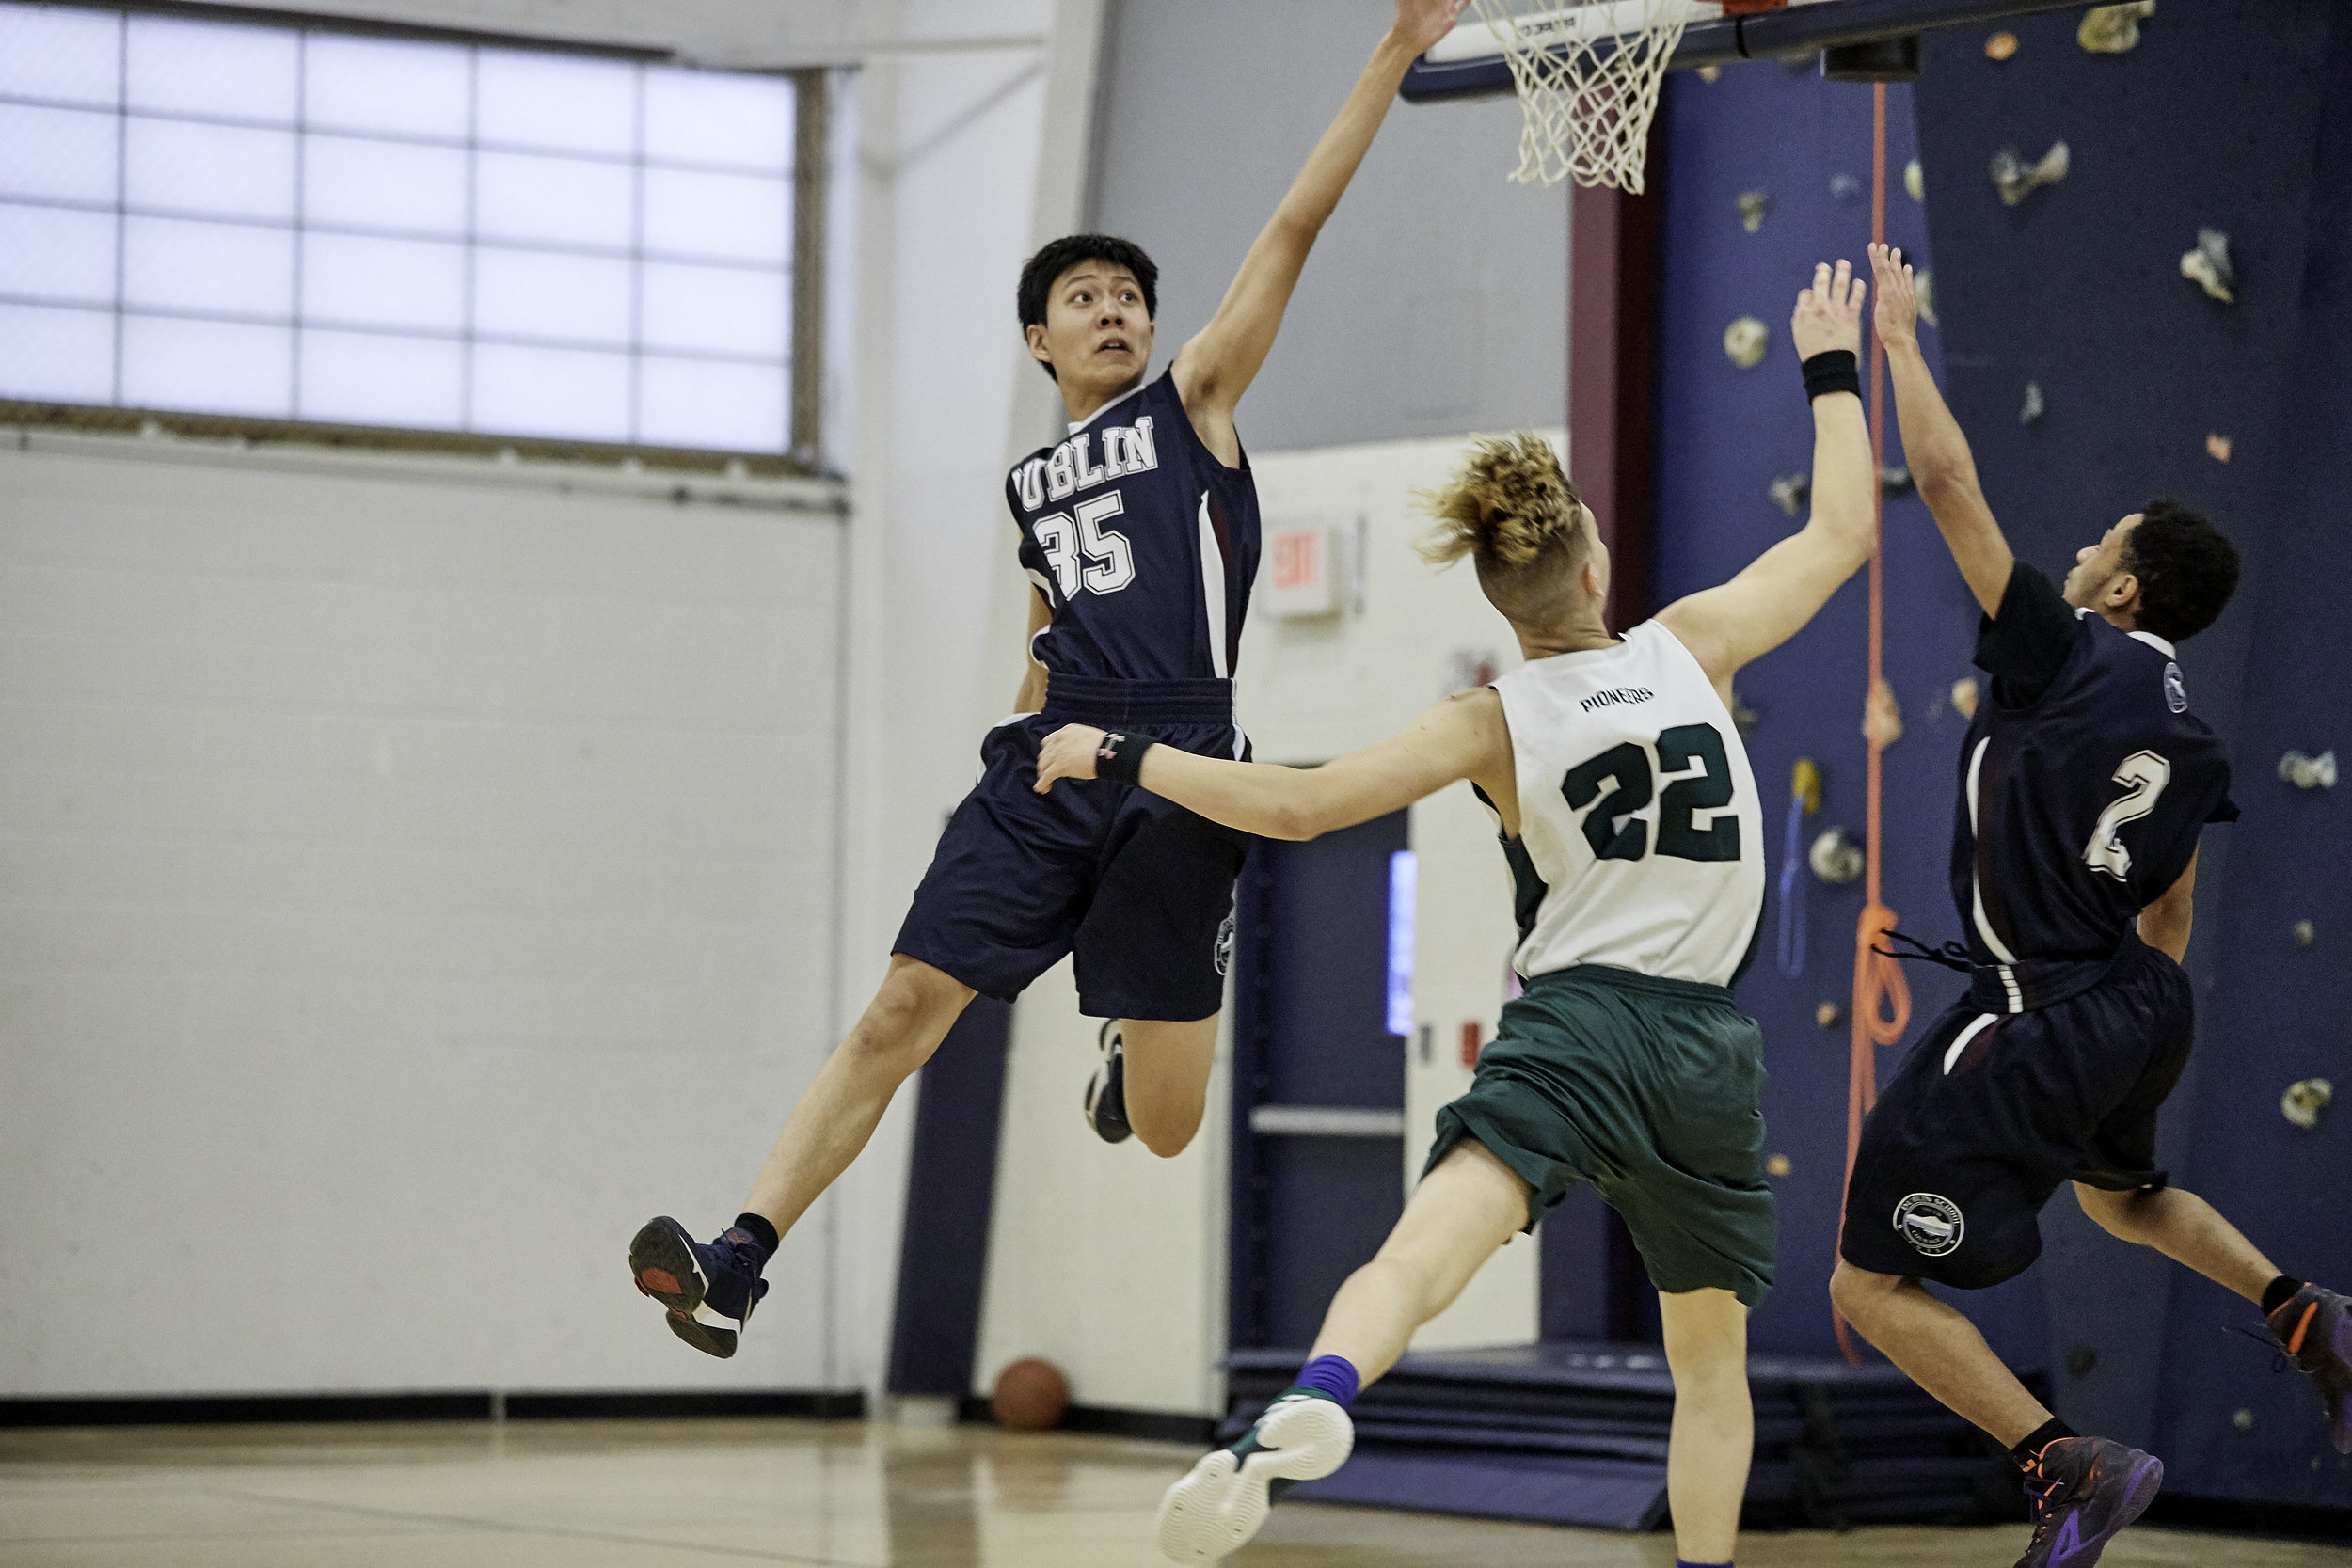 Boys Varsity Basketball vs. Eagle Hill School JV at RVAL Tournament - February 11, 2019 - 167951.jpg